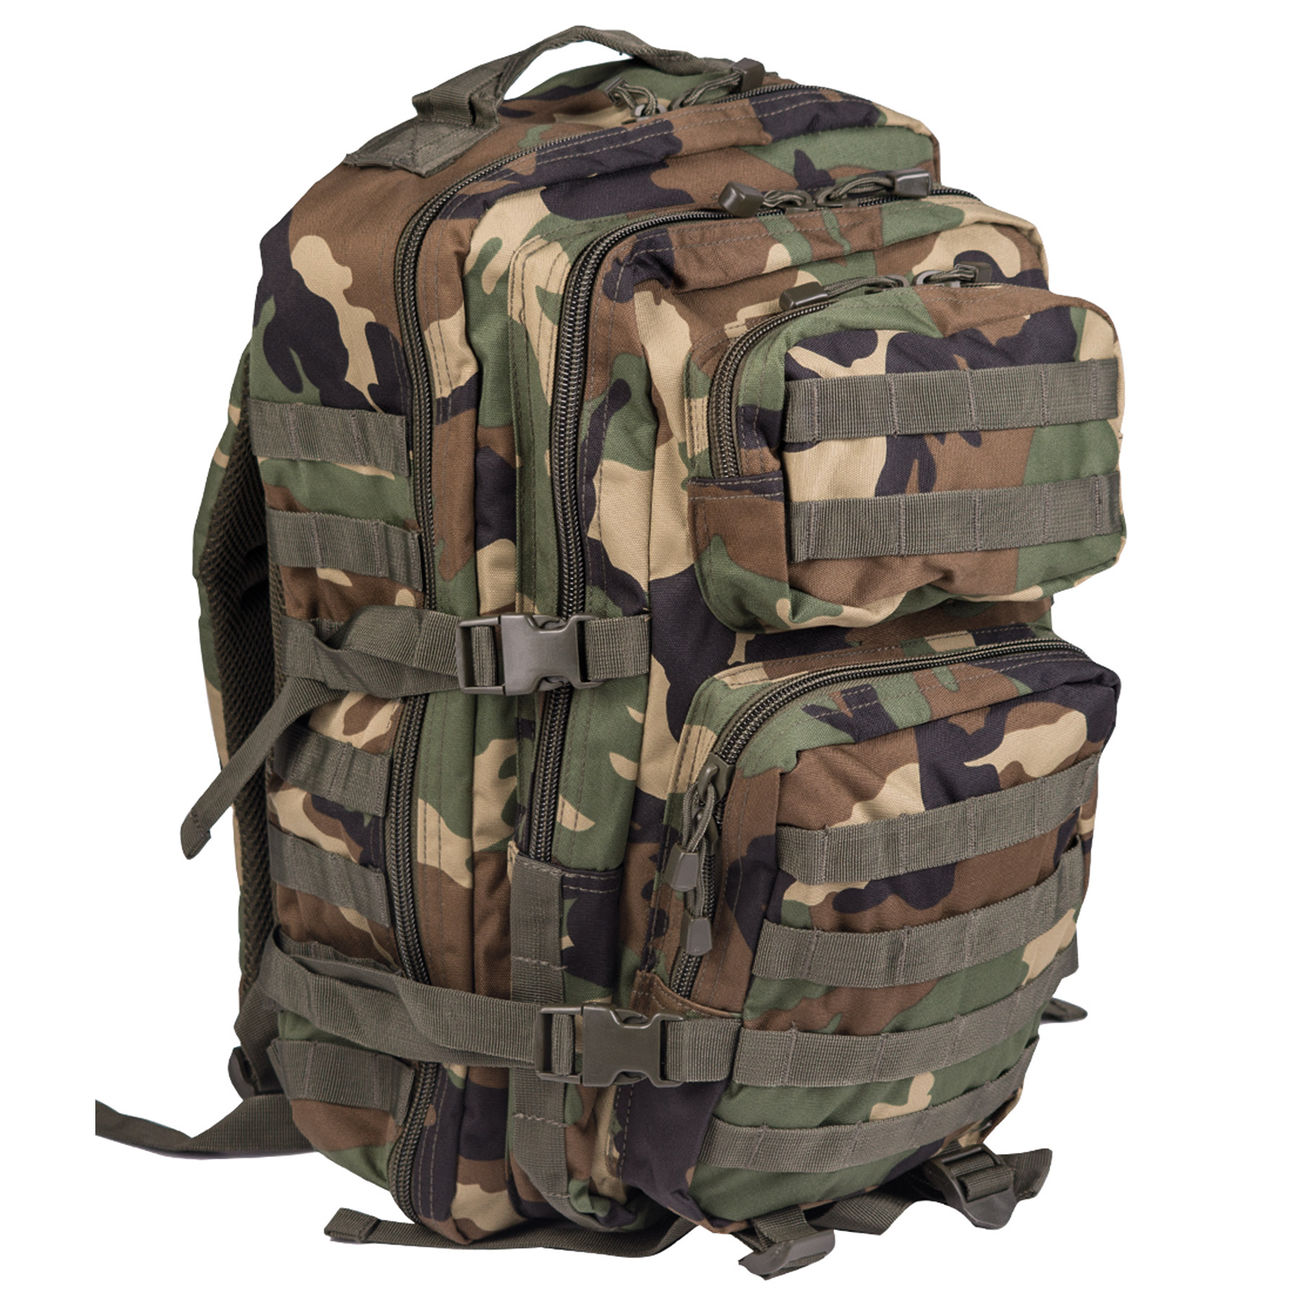 Mil-Tec Rucksack US Assault Pack LG 40 Liter woodland 0